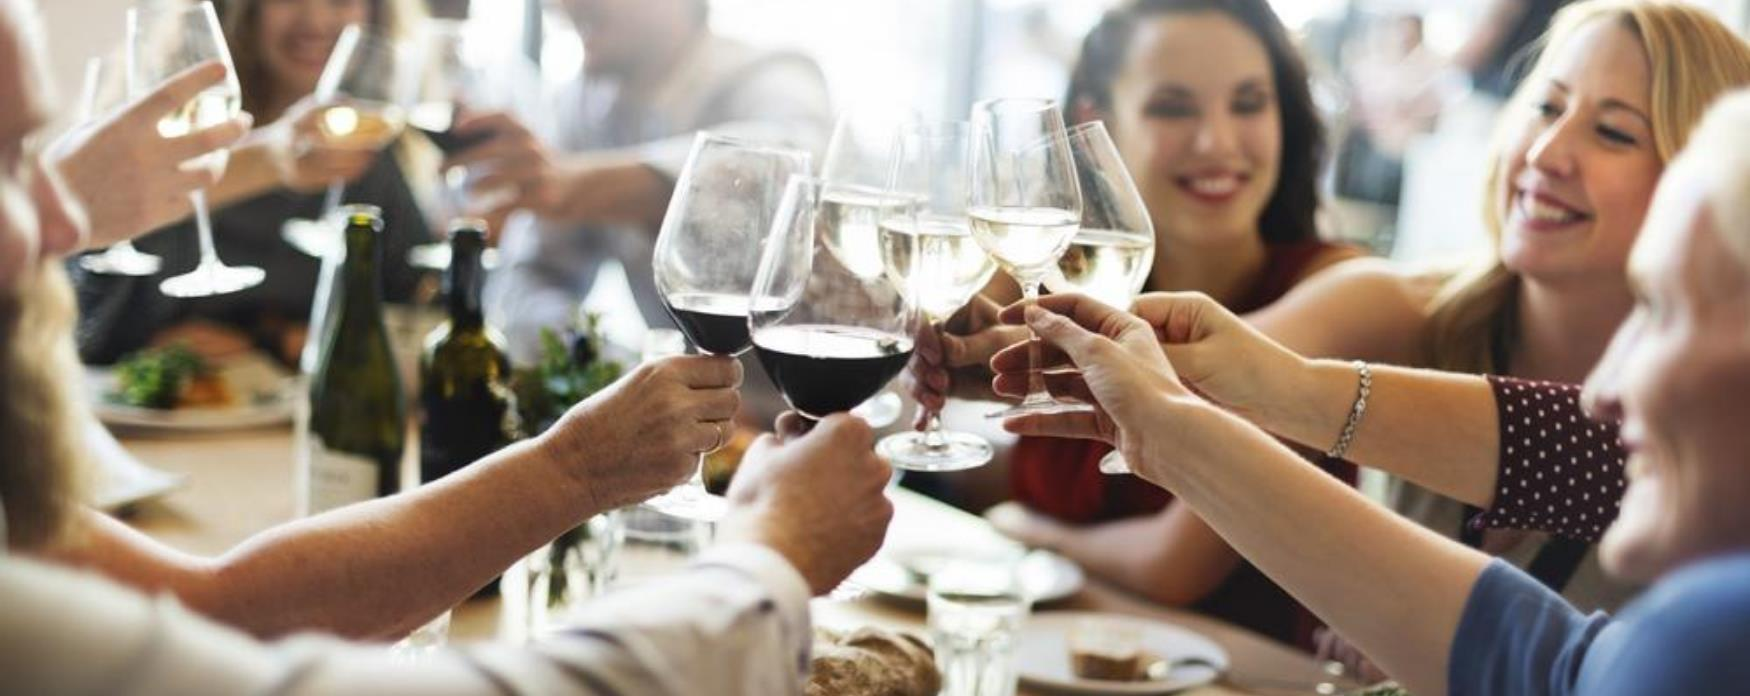 A group of people clinking glasses at the dinner table